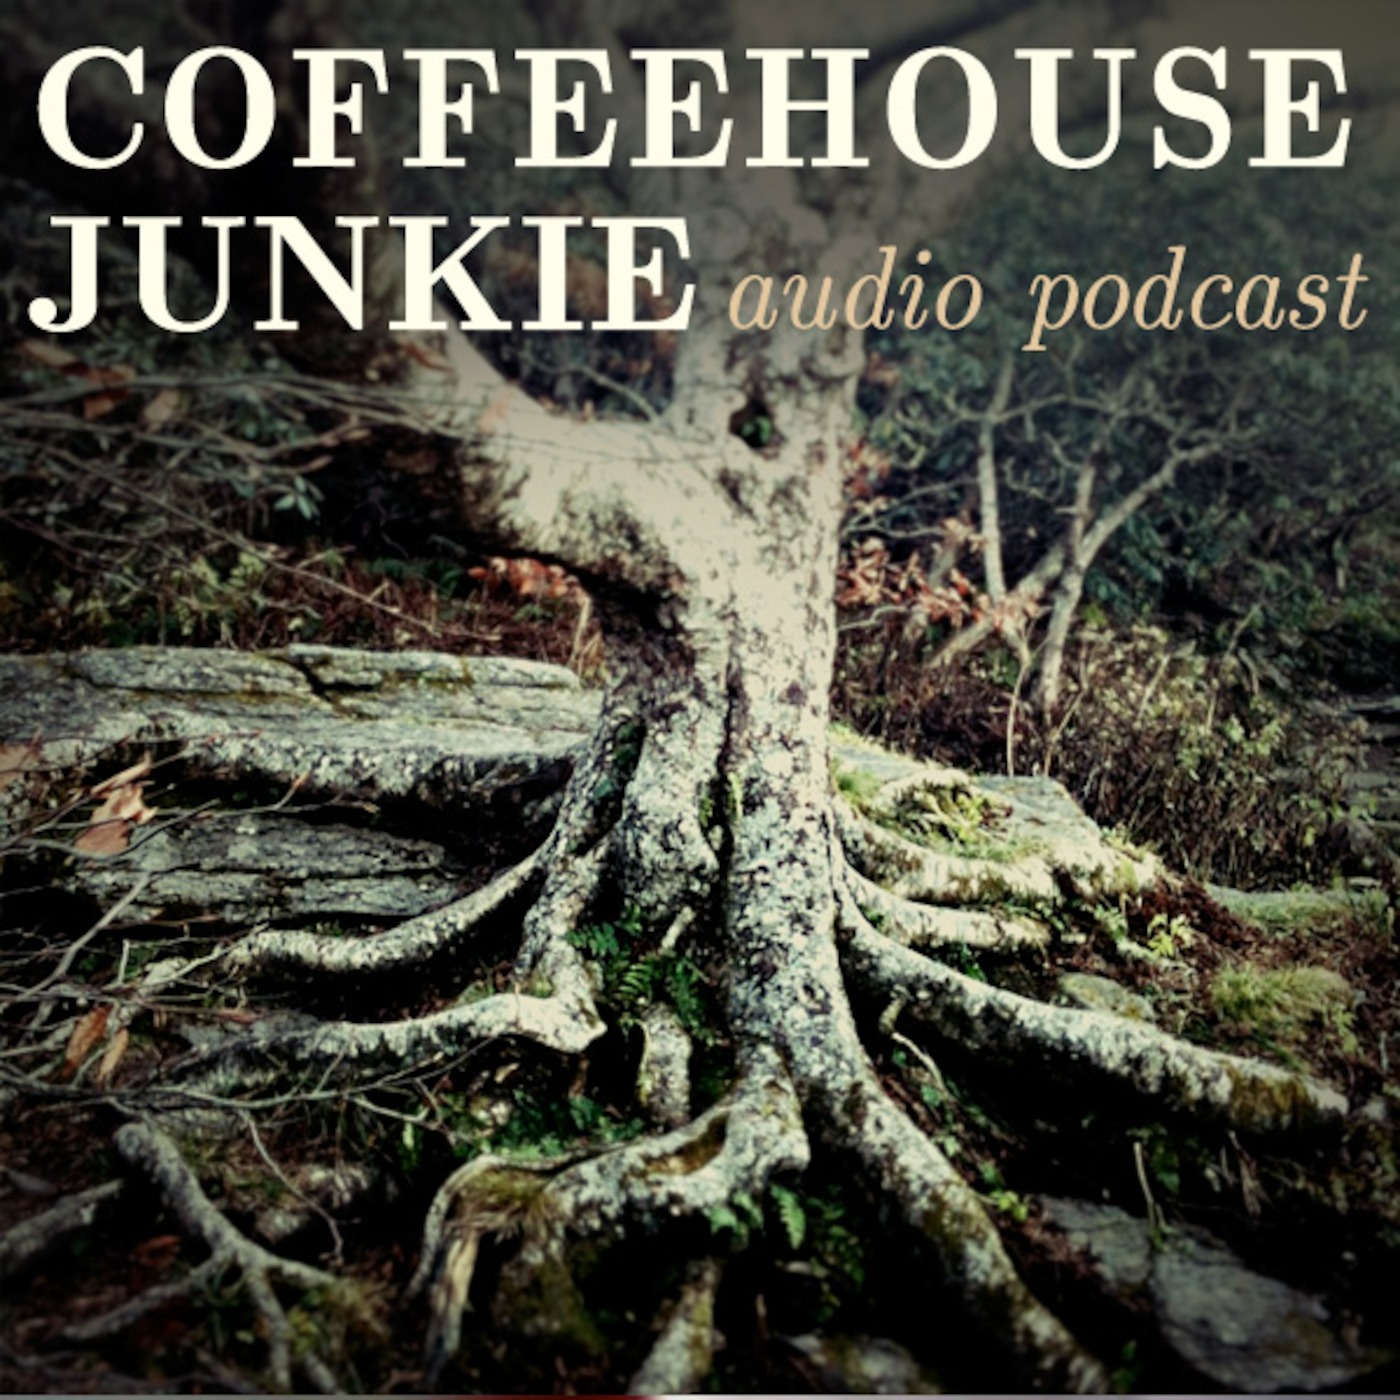 Coffeehouse Junkie's Podcast